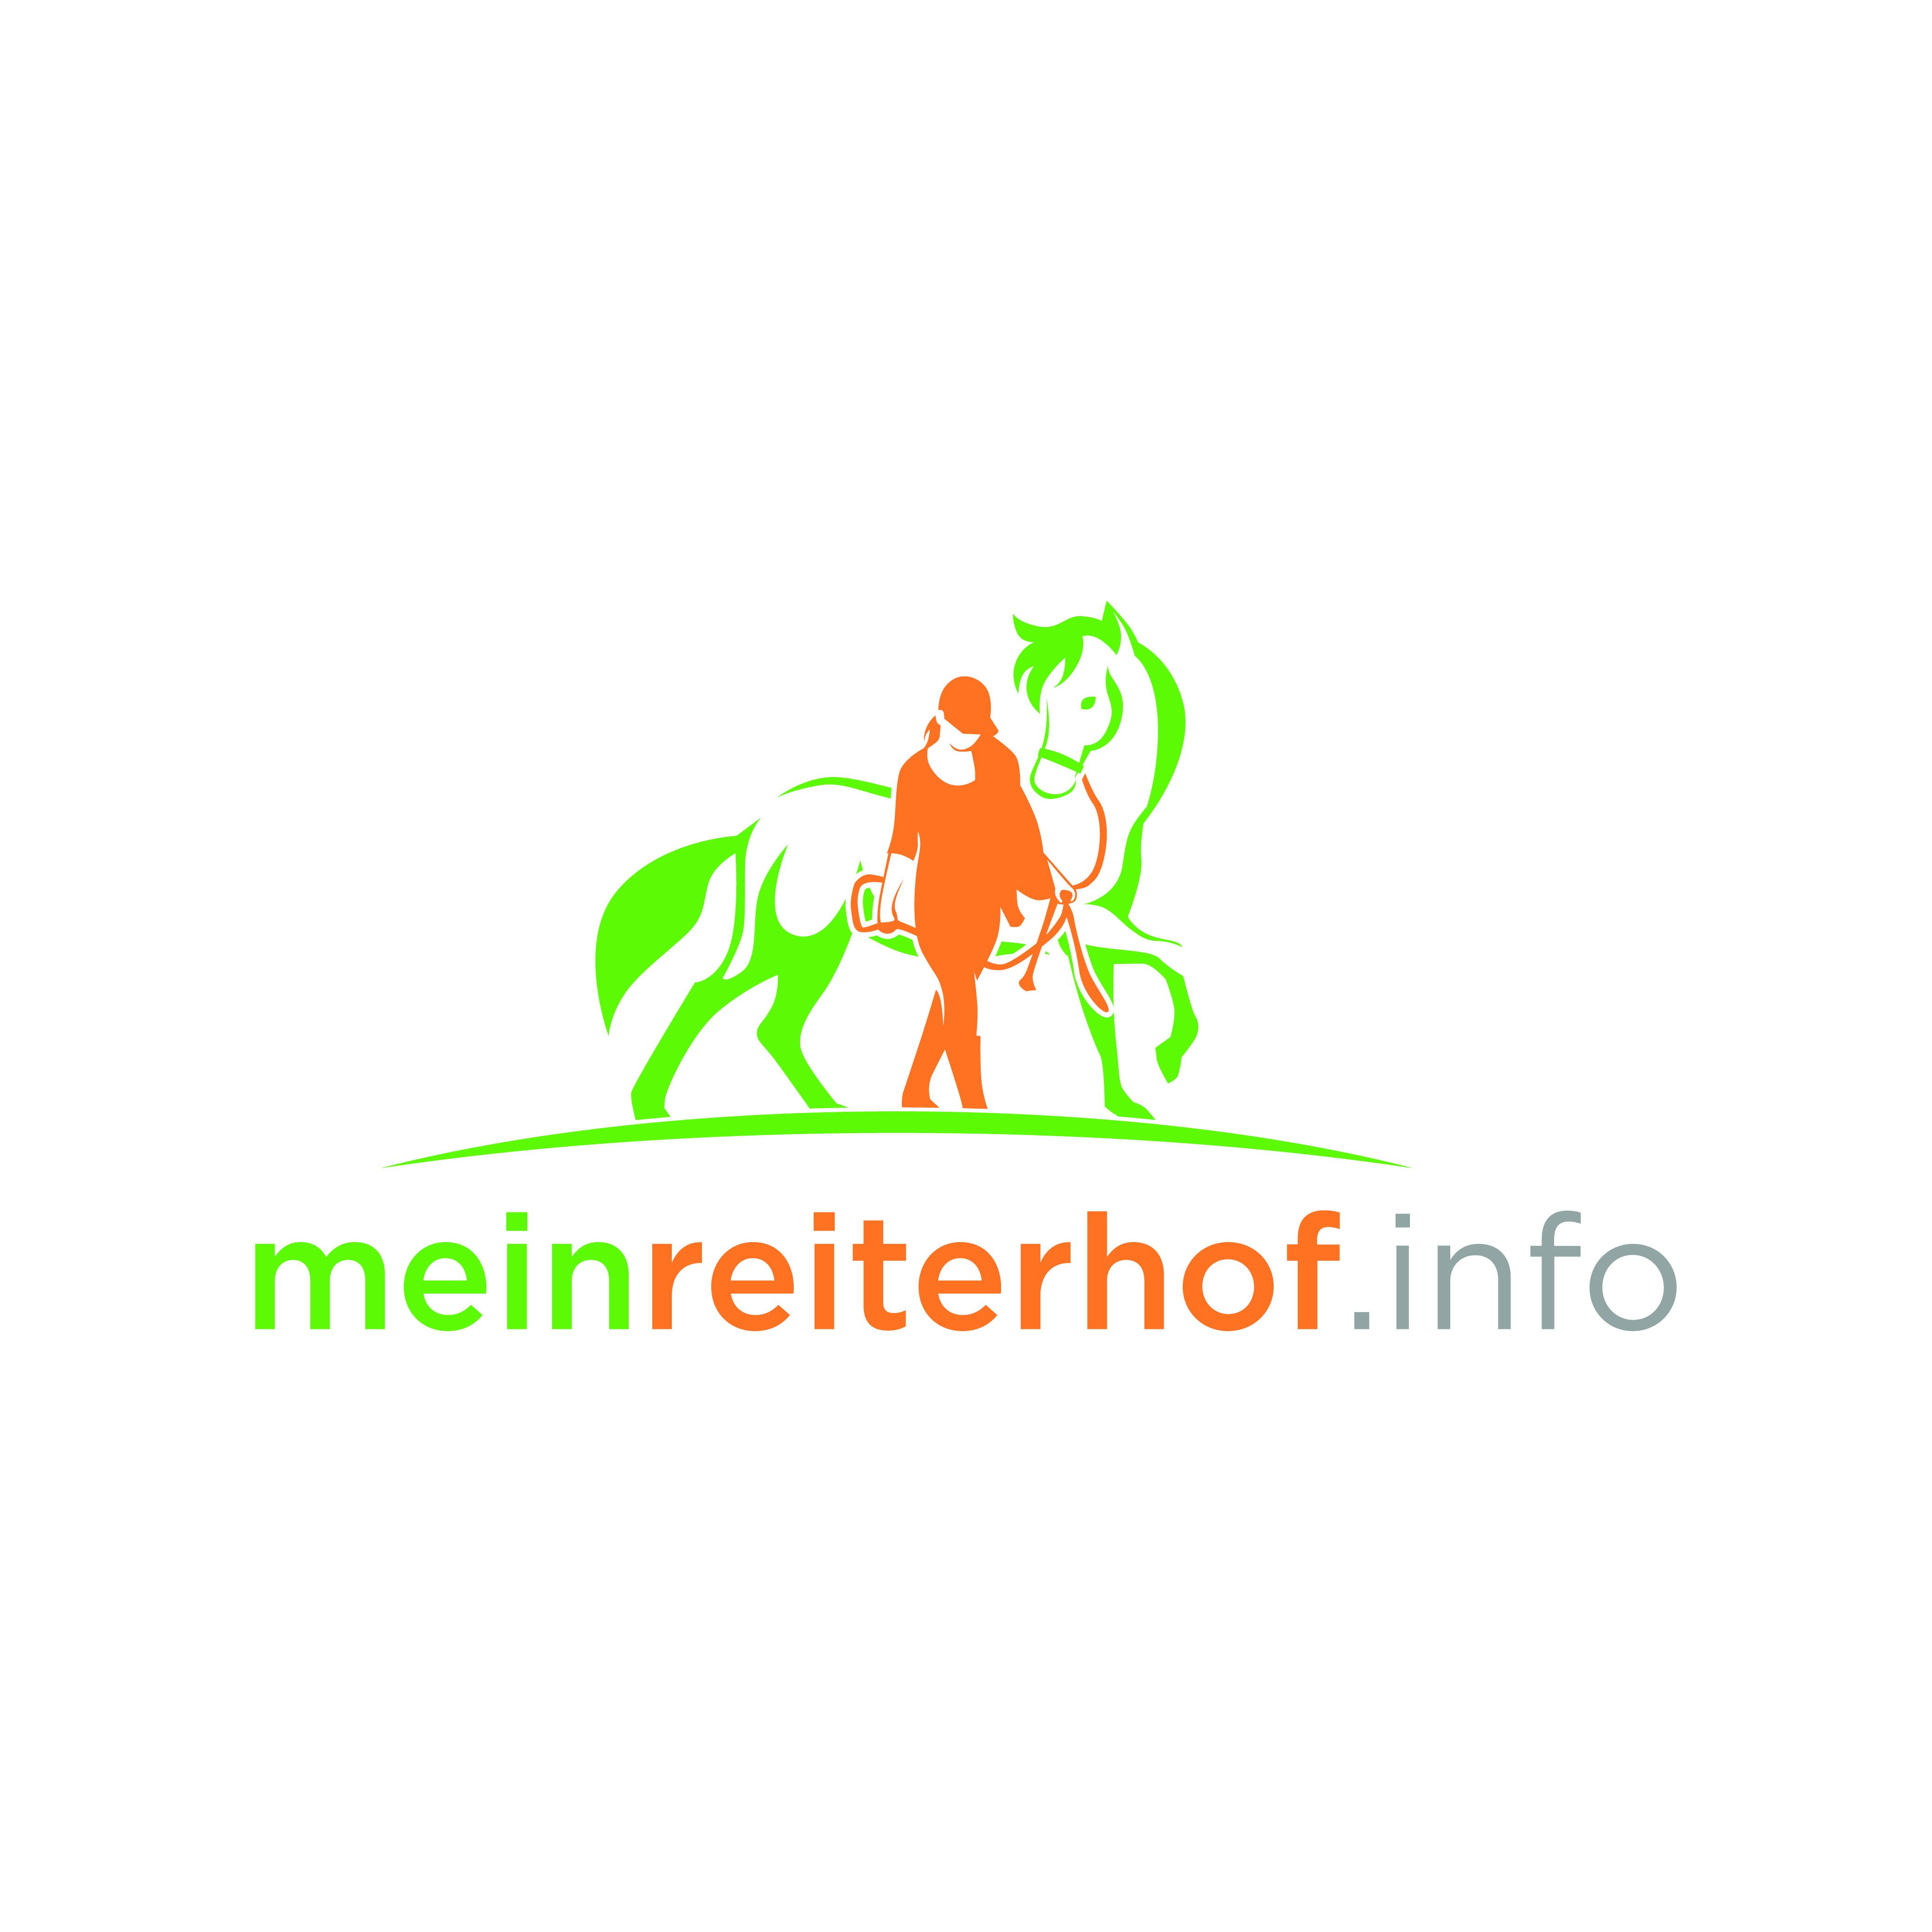 A new logo that will be used on our new search website for horse riding holidays and lessons.